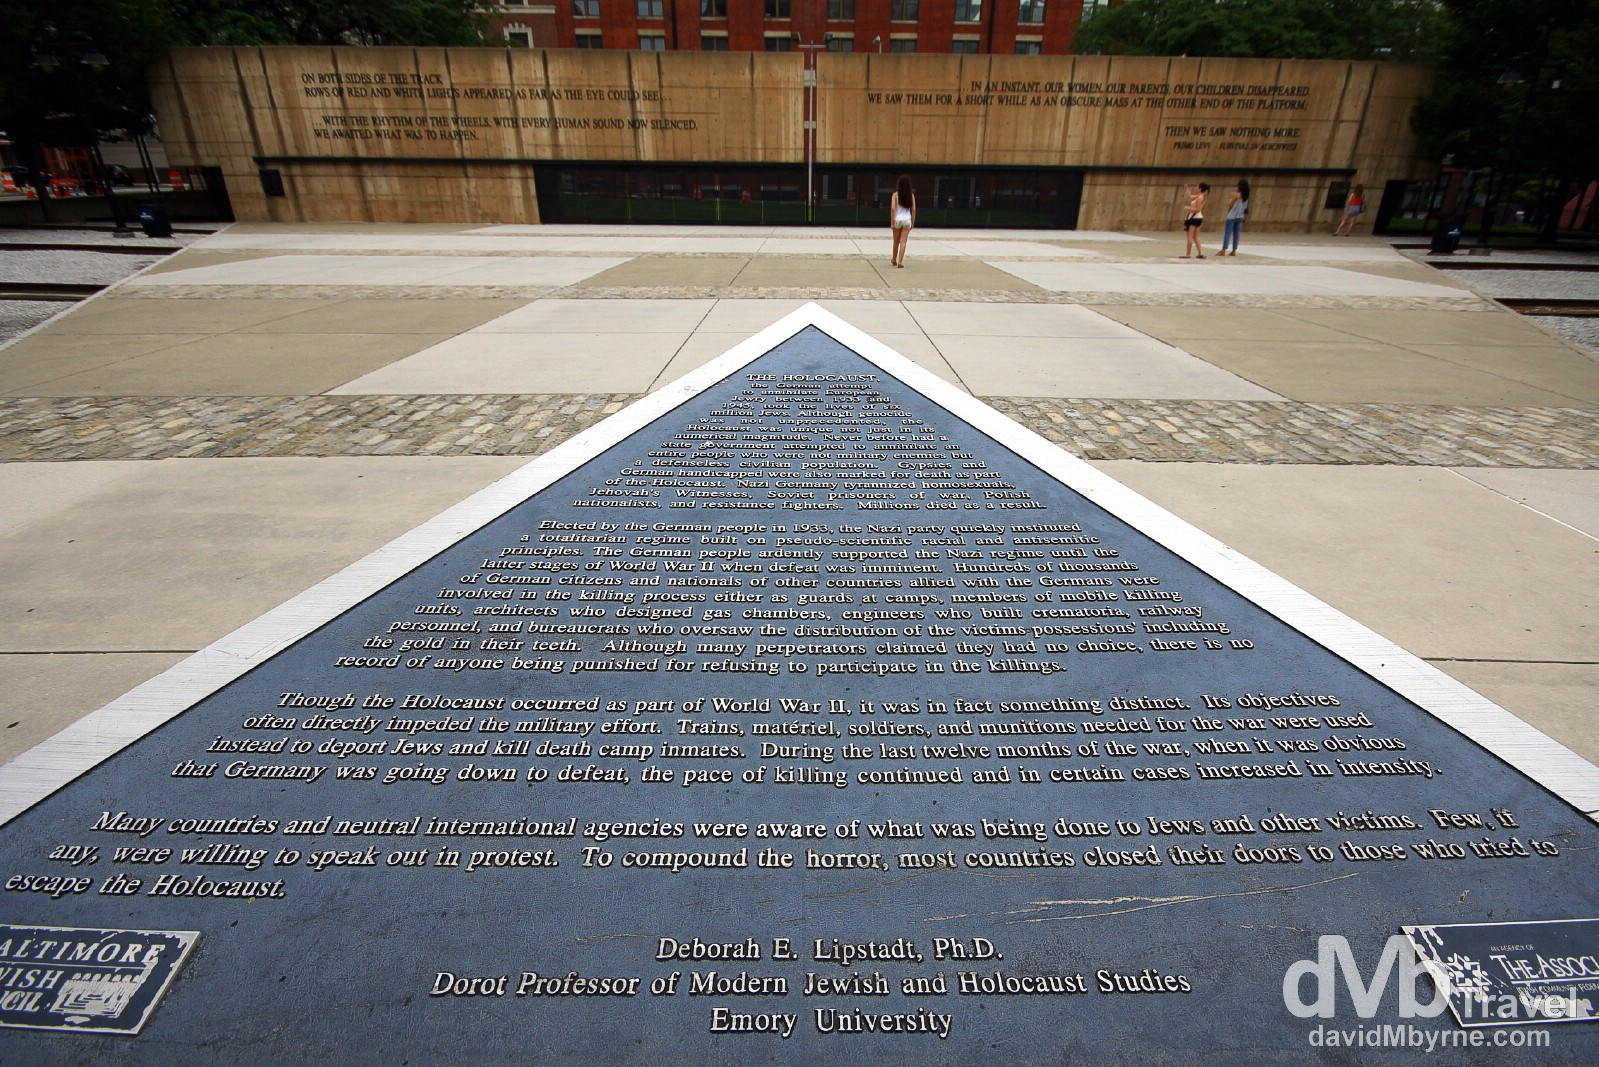 The Holocaust Memorial,  Baltimore, Maryland, USA. July 9th 2013.